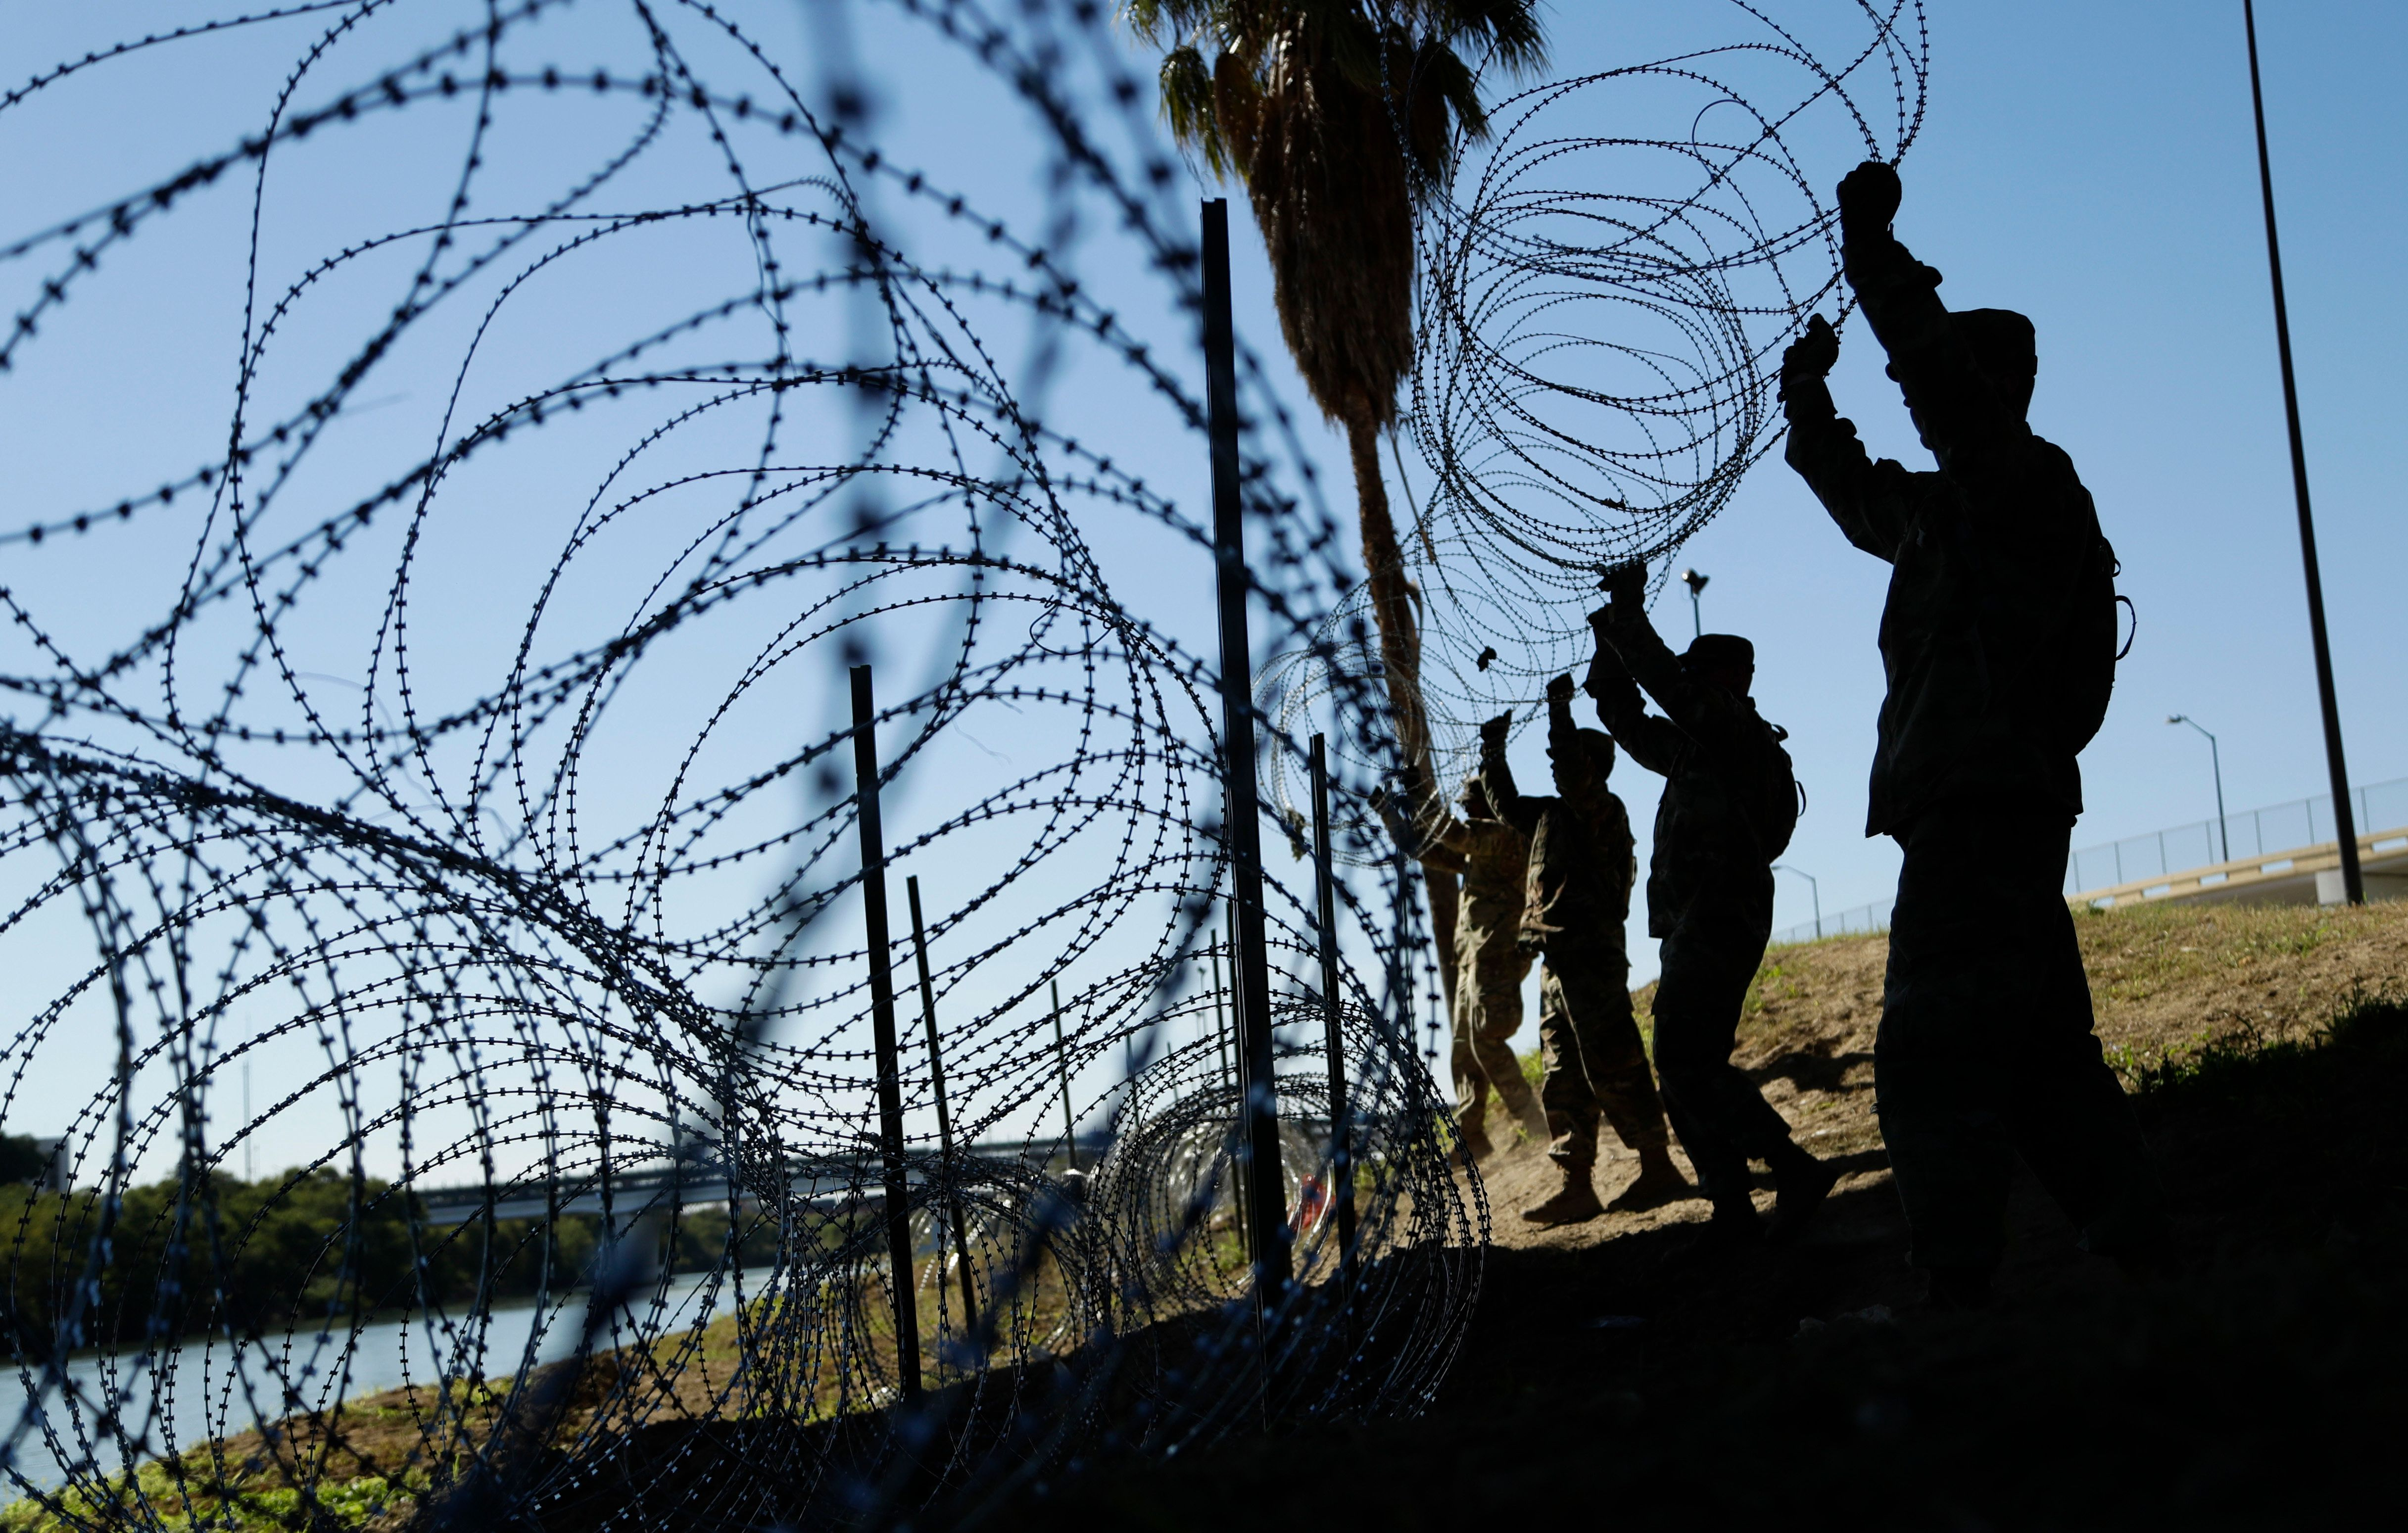 Members of the U.S. military install multiple tiers of concertina wire along the banks of the Rio Grande near the Juarez-Linc